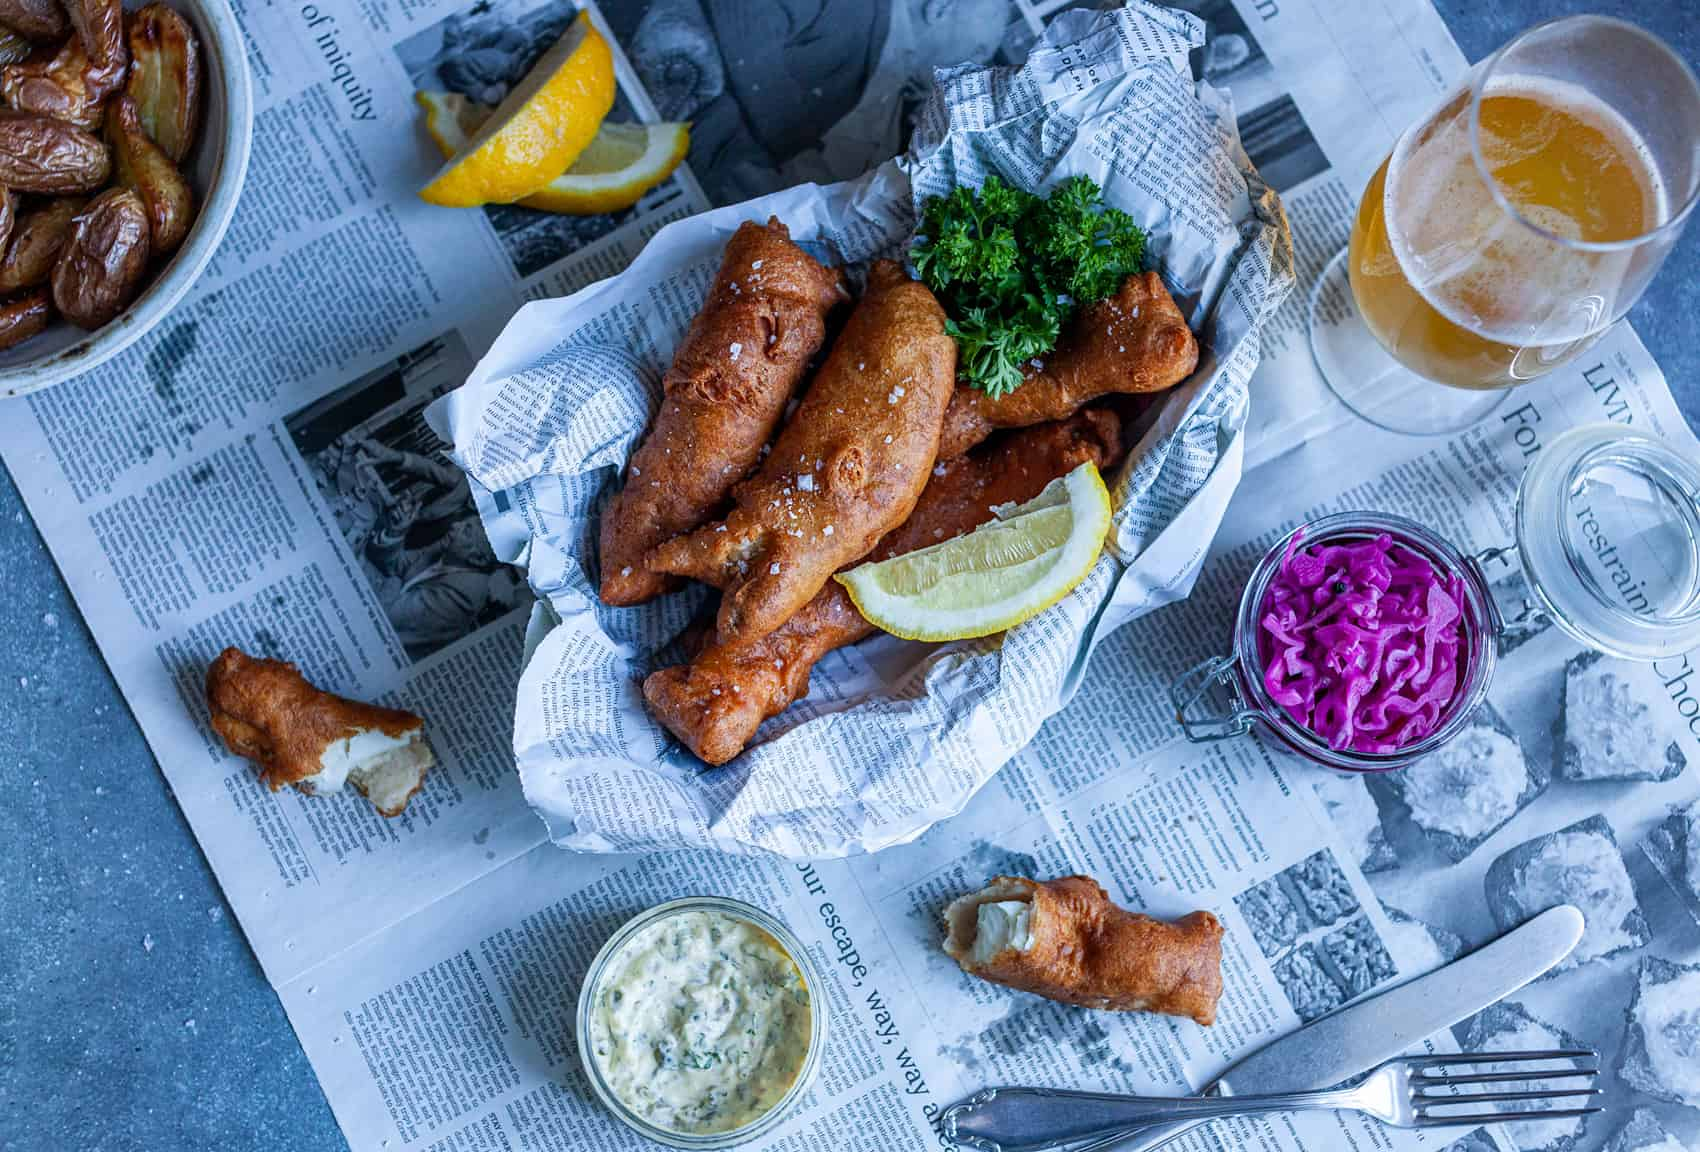 Feature image of beer-battered halibut and sides